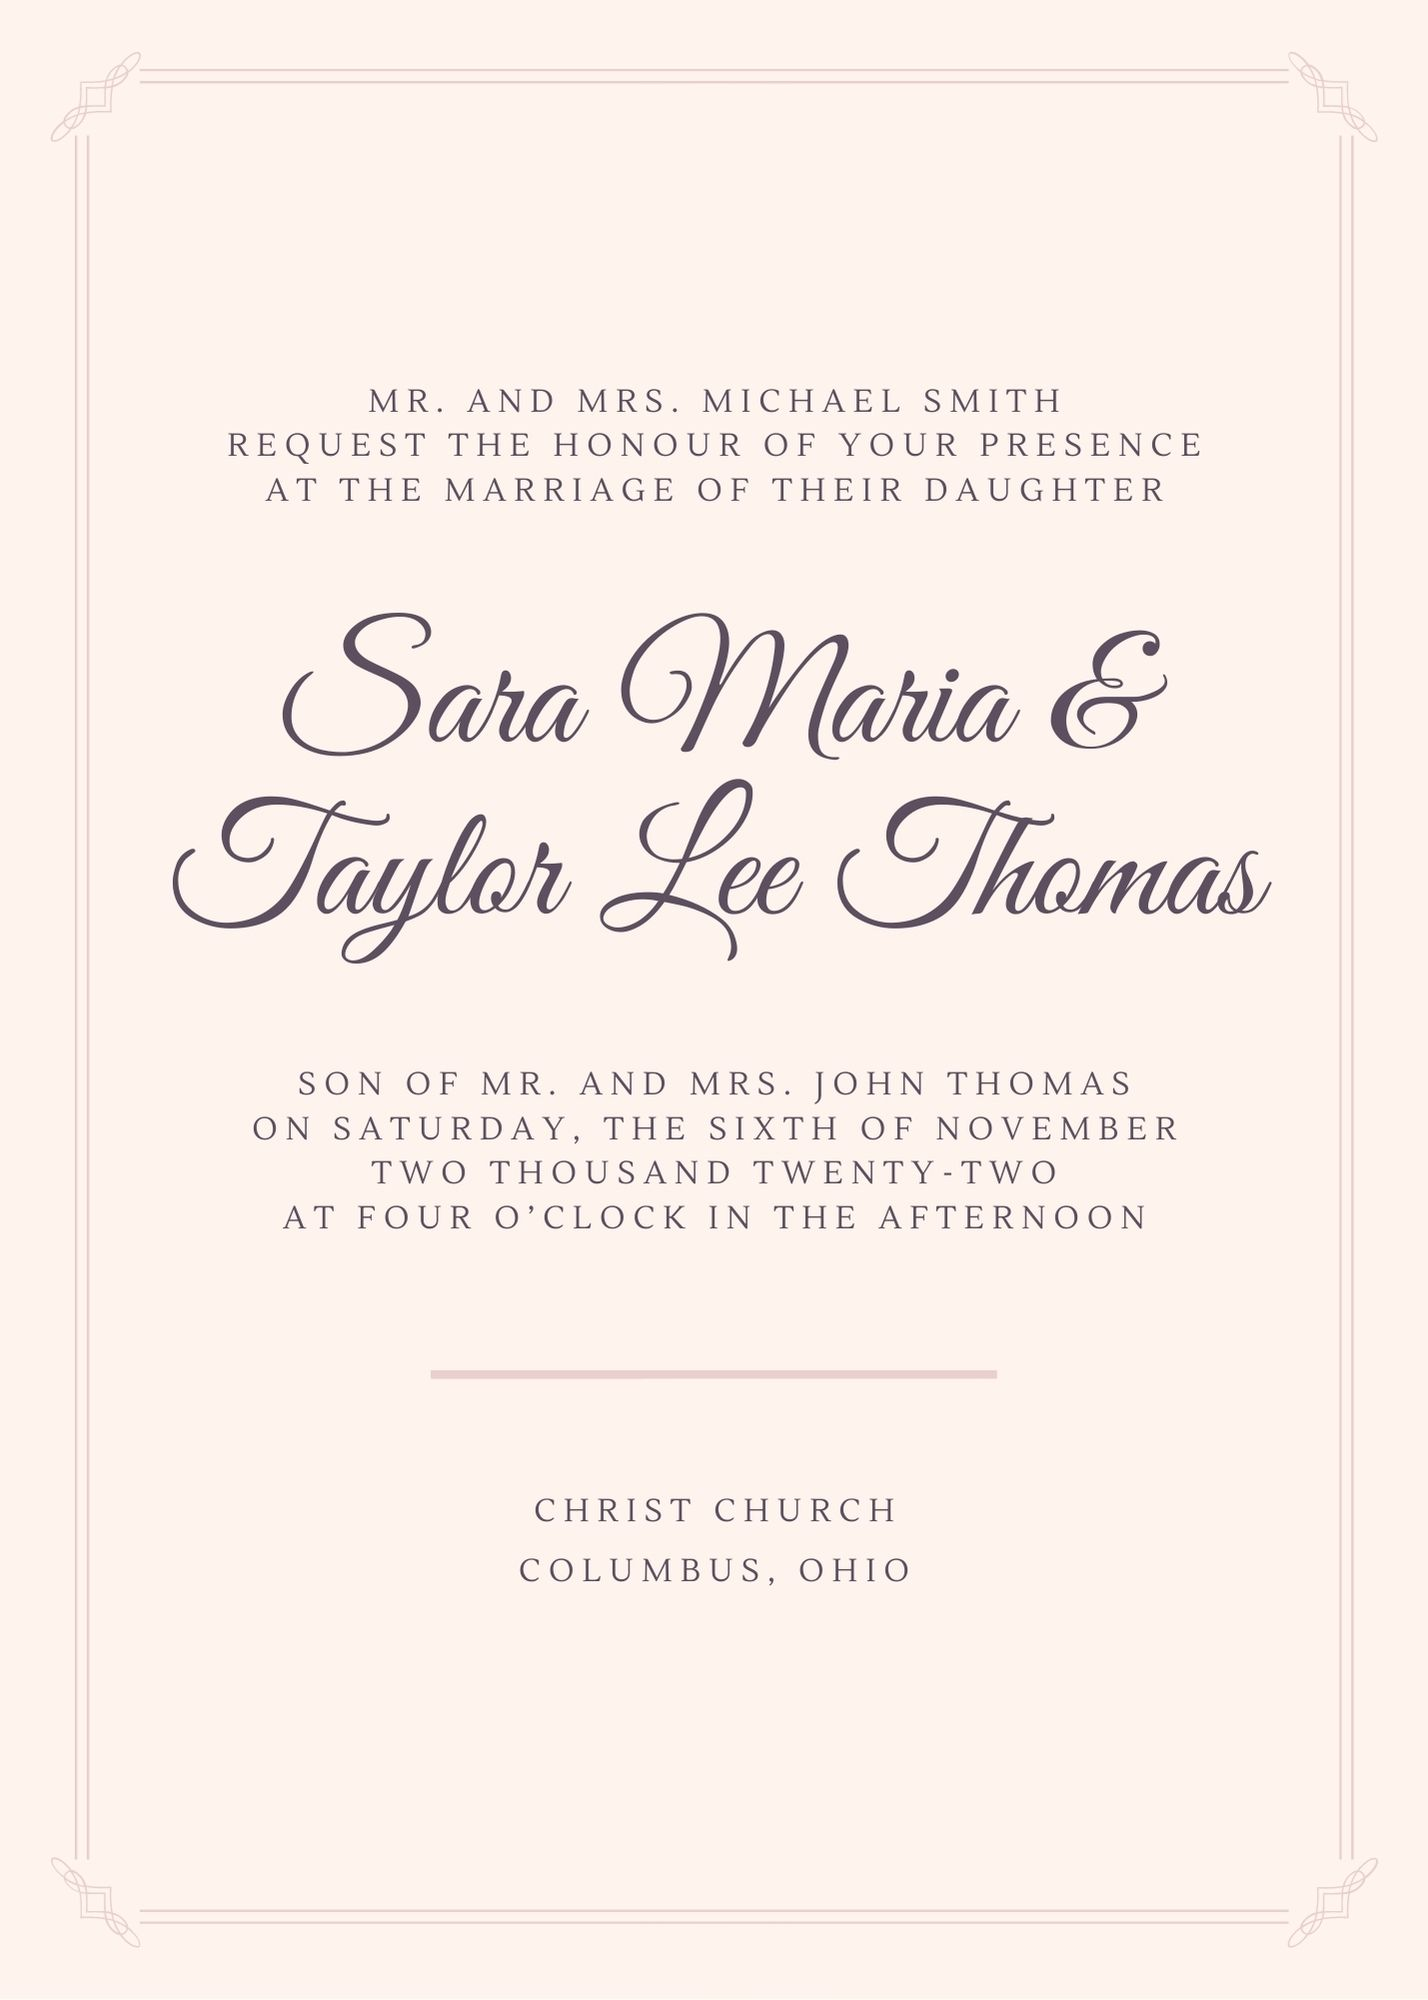 wedding invitation for wedding hosted by the bride's parents